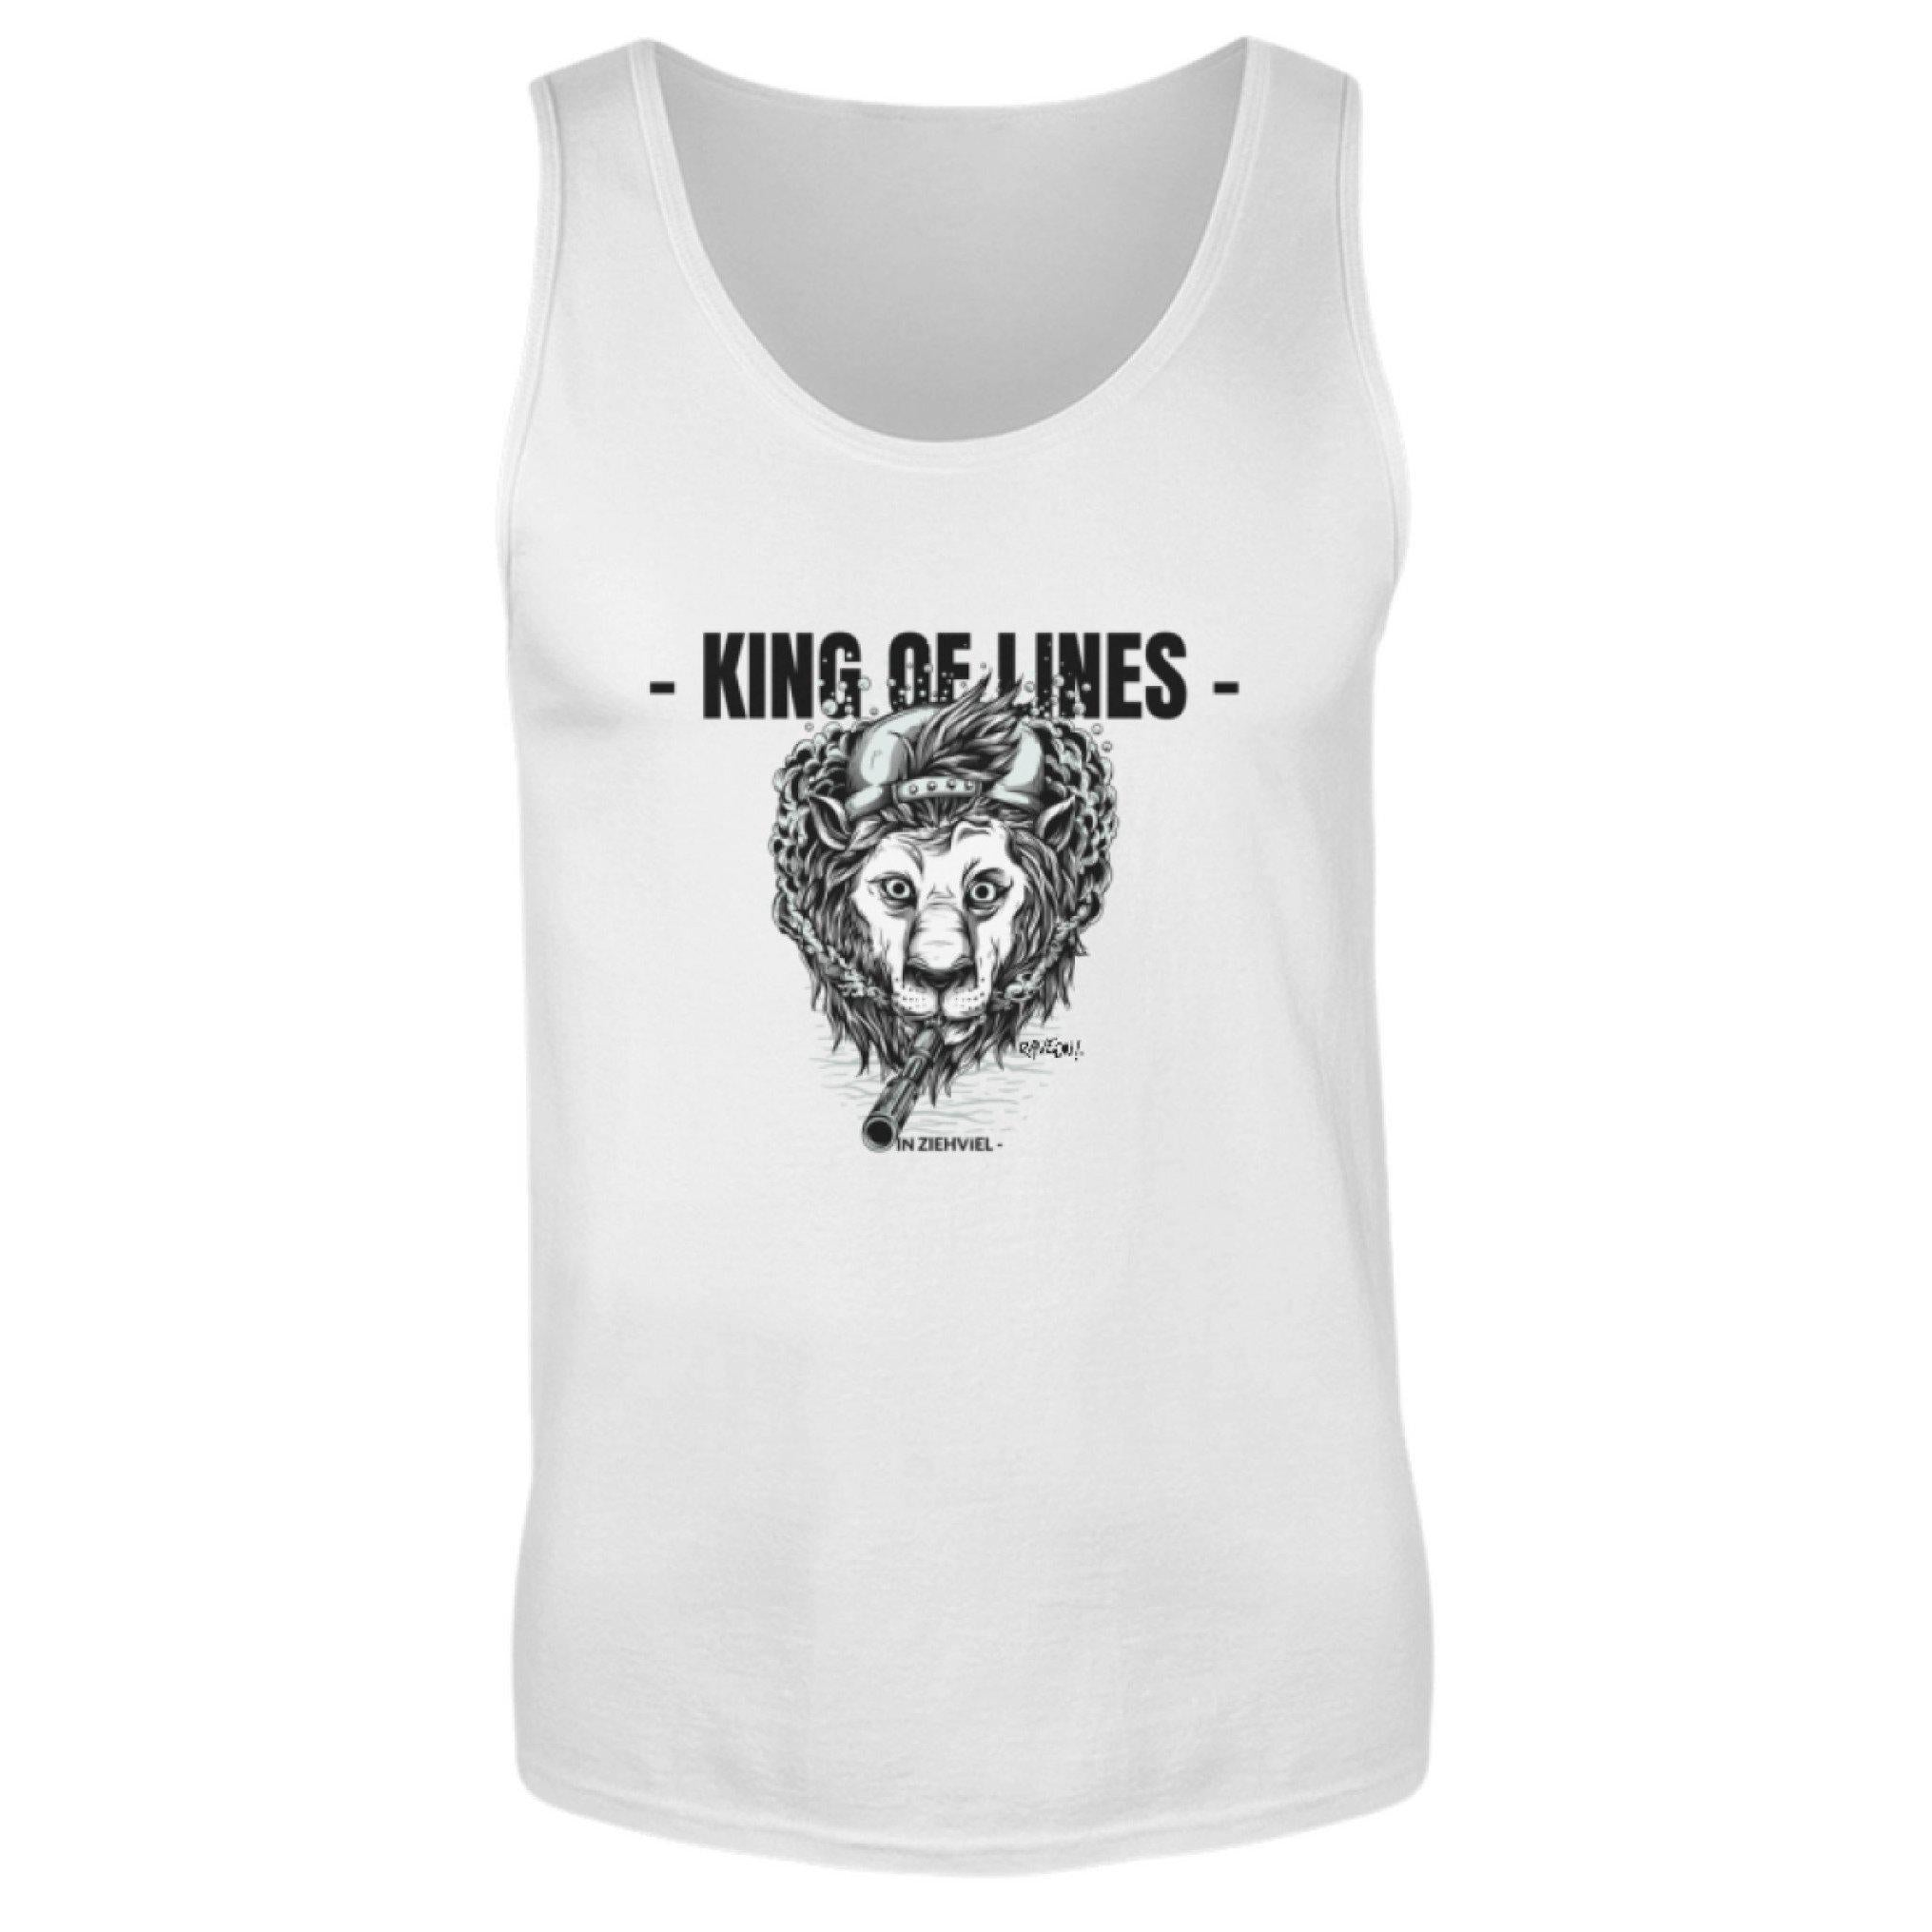 KING OF LINES - Rave On!® - Herren Tanktop Herren Tank-Top White / S - Rave On!® der Club & Techno Szene Shop für Coole Junge Mode Streetwear Style & Fashion Outfits + Sexy Festival 420 Stuff